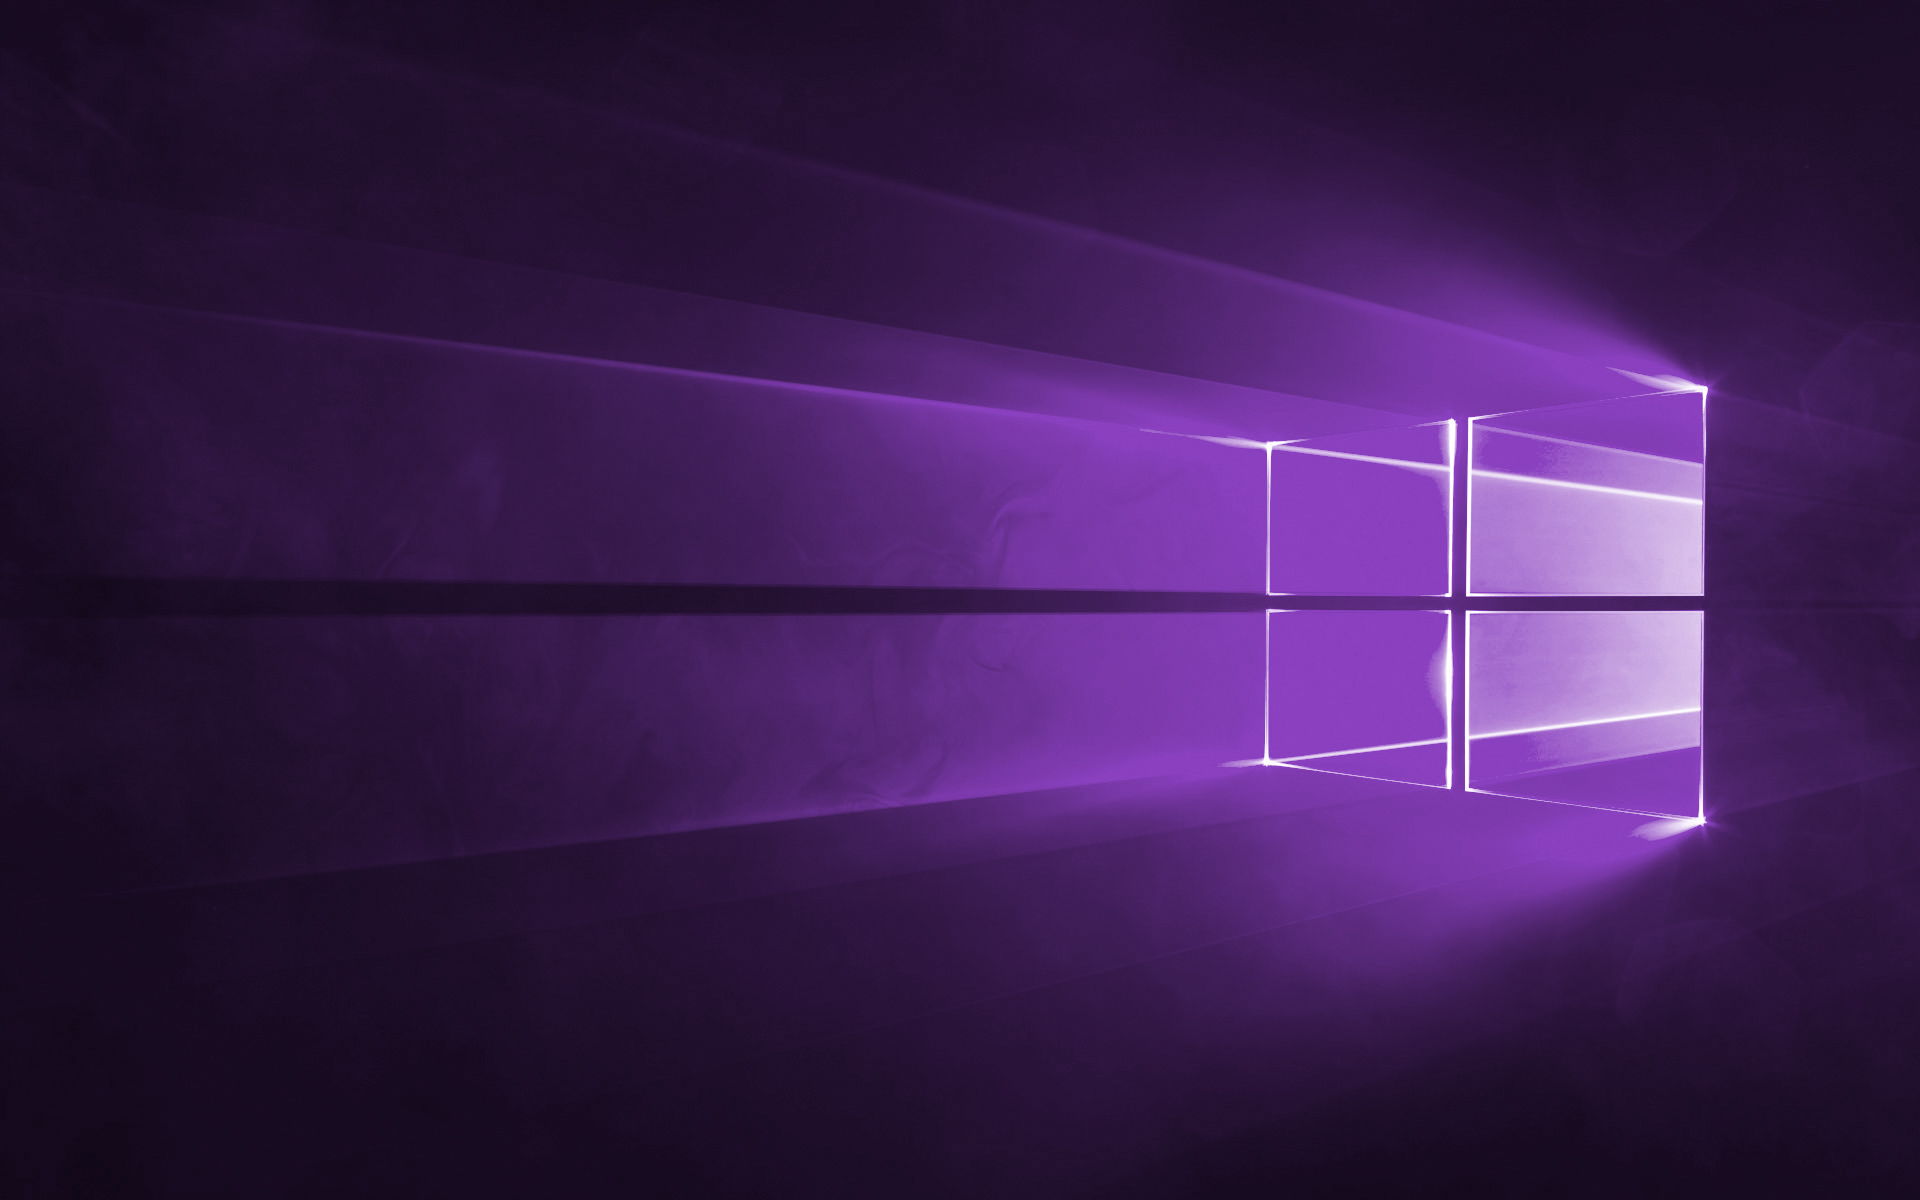 Windows 10 Sfondo Viola